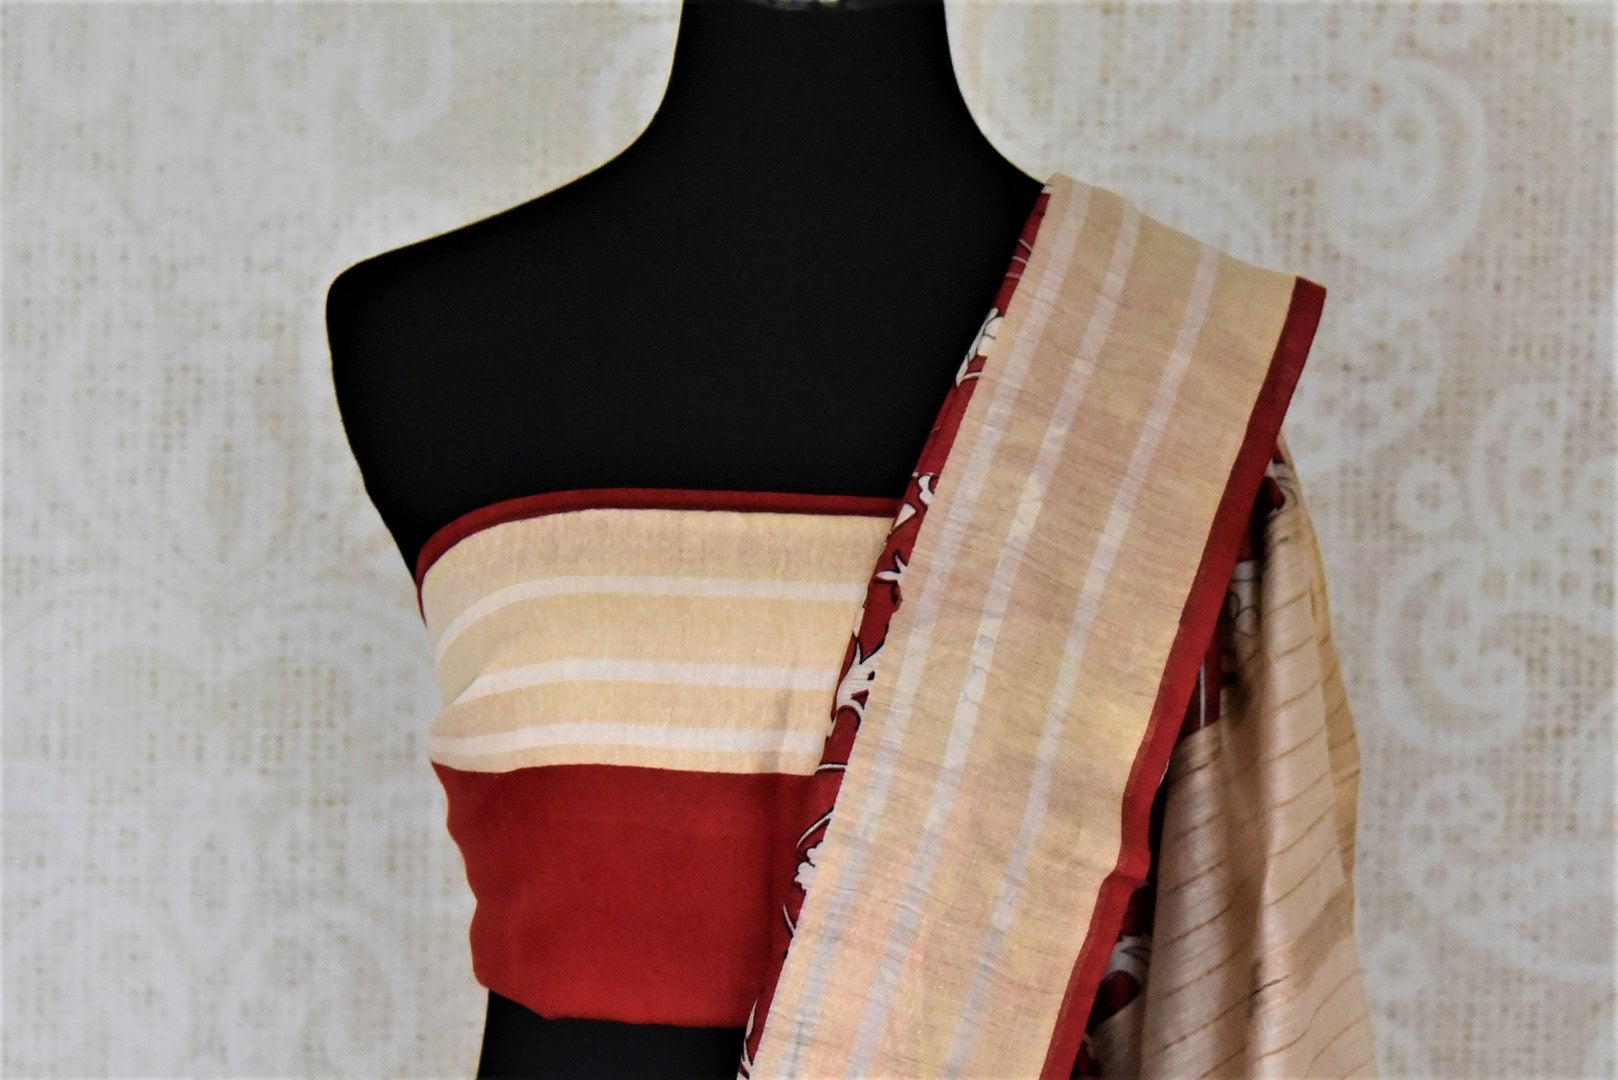 Shop alluring red printed tussar silk saree online in USA with striped cream border. Make a beautiful appearance on special occasions with exquisite Indian designer sarees, pure silk saris from Pure Elegance Indian fashion store in USA.-blouse pallu